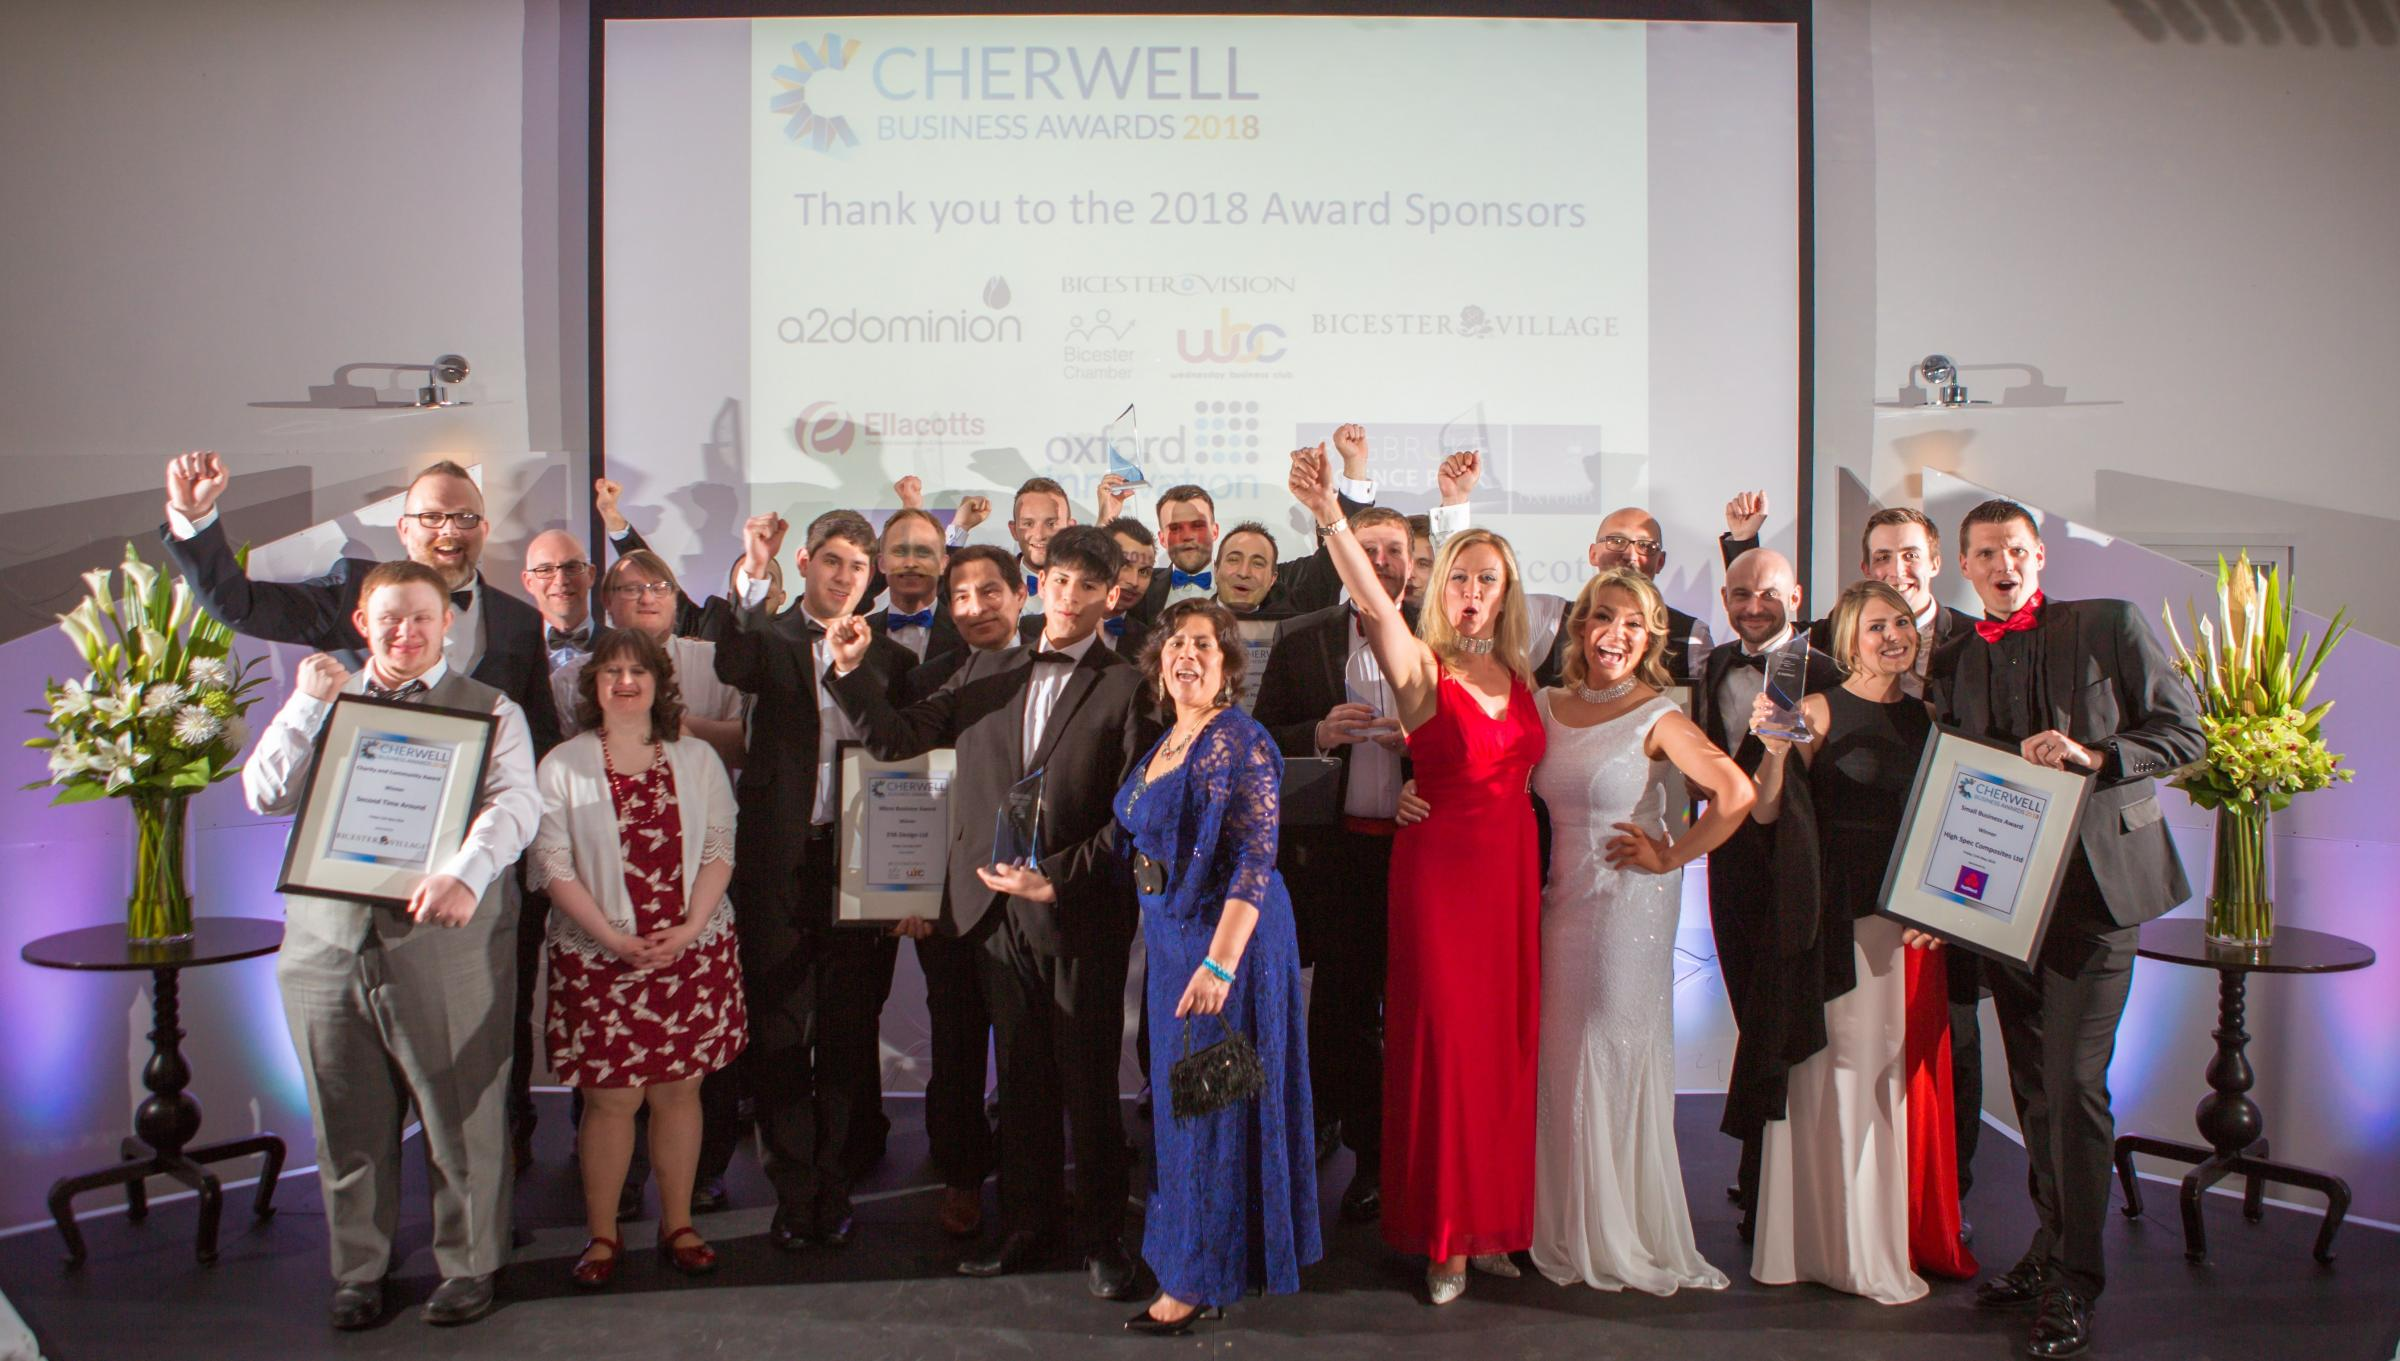 Winners of the 2018 Cherwell Business Awards. Picture by Becky Moyce